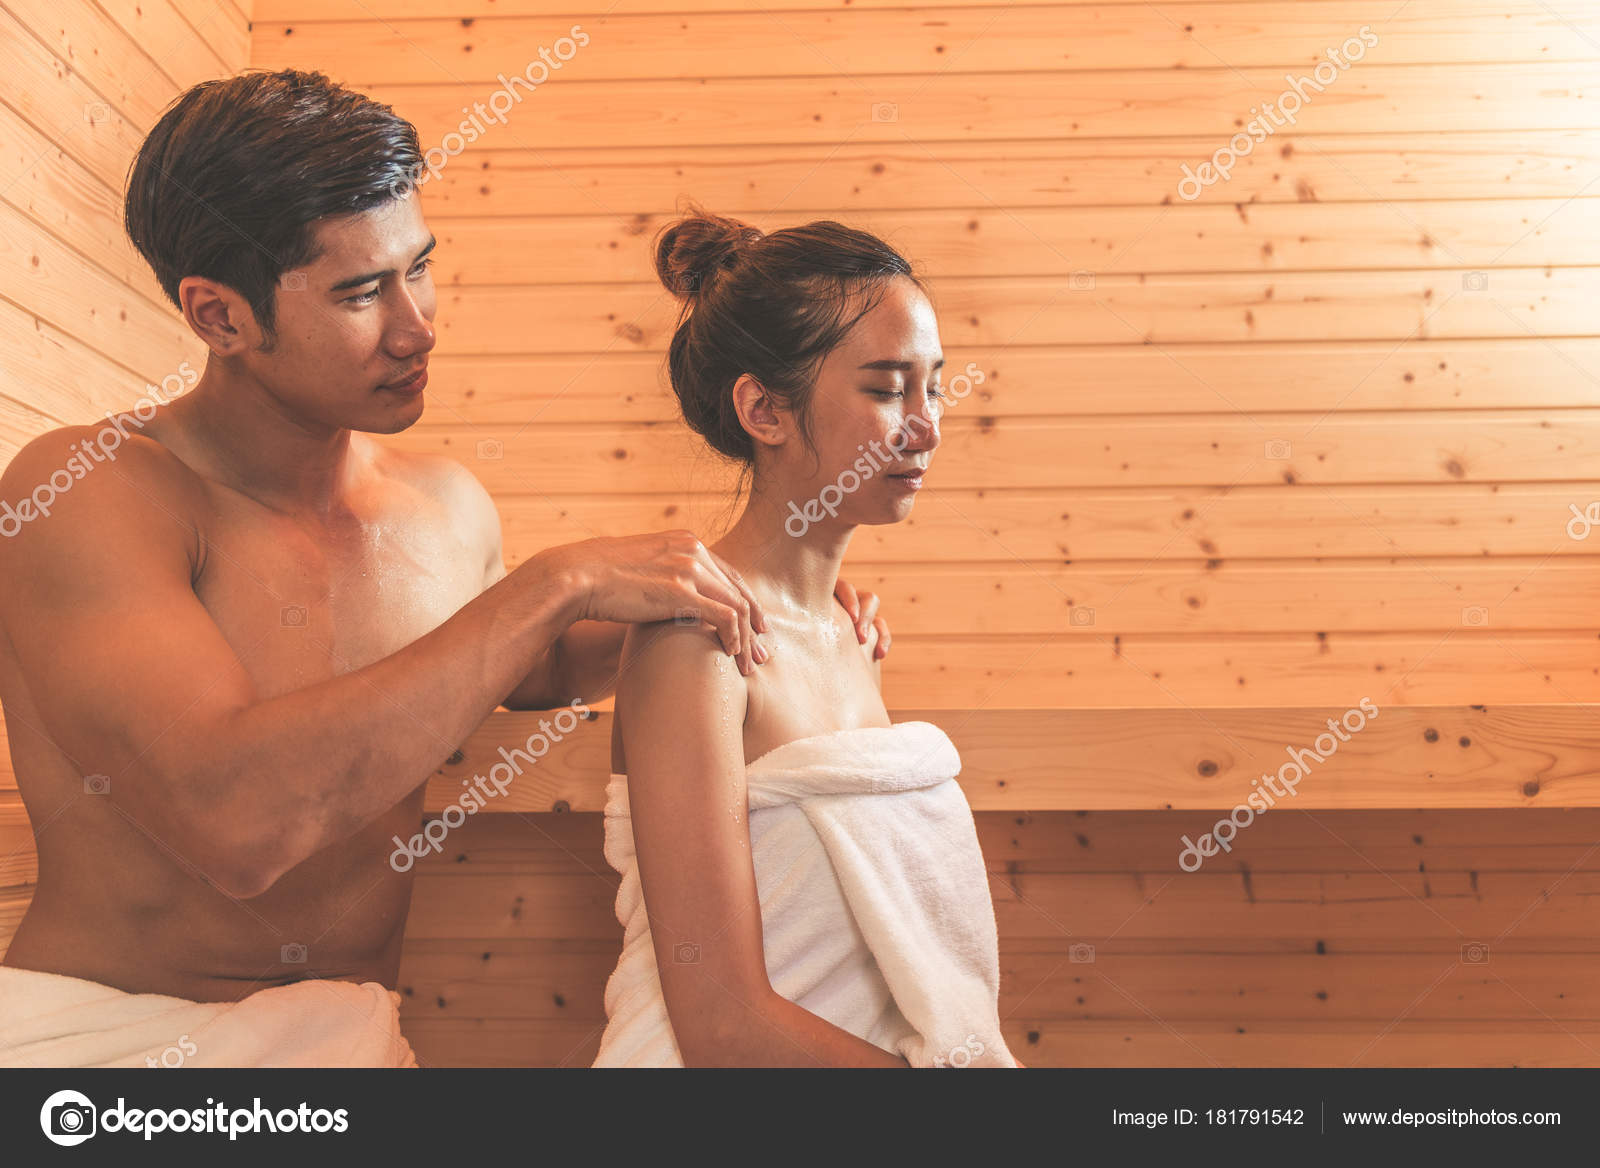 Young Asian Couples Or Lovers Have Romantic Relaxing In Sauna Room Skin Care Heat Treatment And Body Clean Up Refreshing Spa With Steam Bath